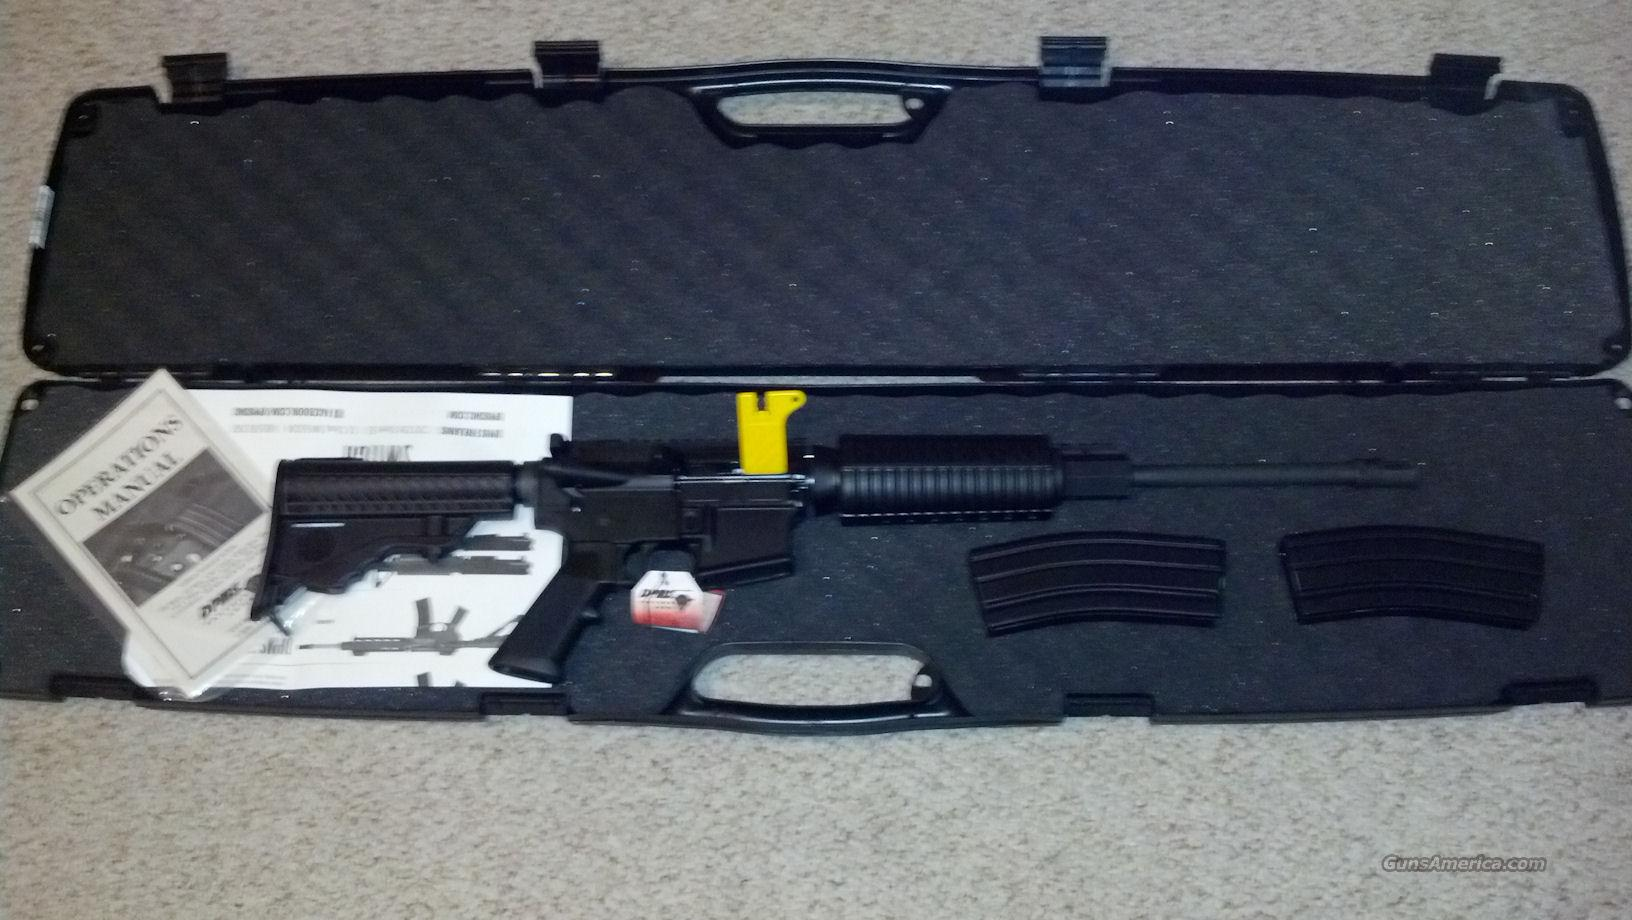 DPMS Panther AR-15 NIB 5.56 / .223  Guns > Rifles > AR-15 Rifles - Small Manufacturers > Complete Rifle